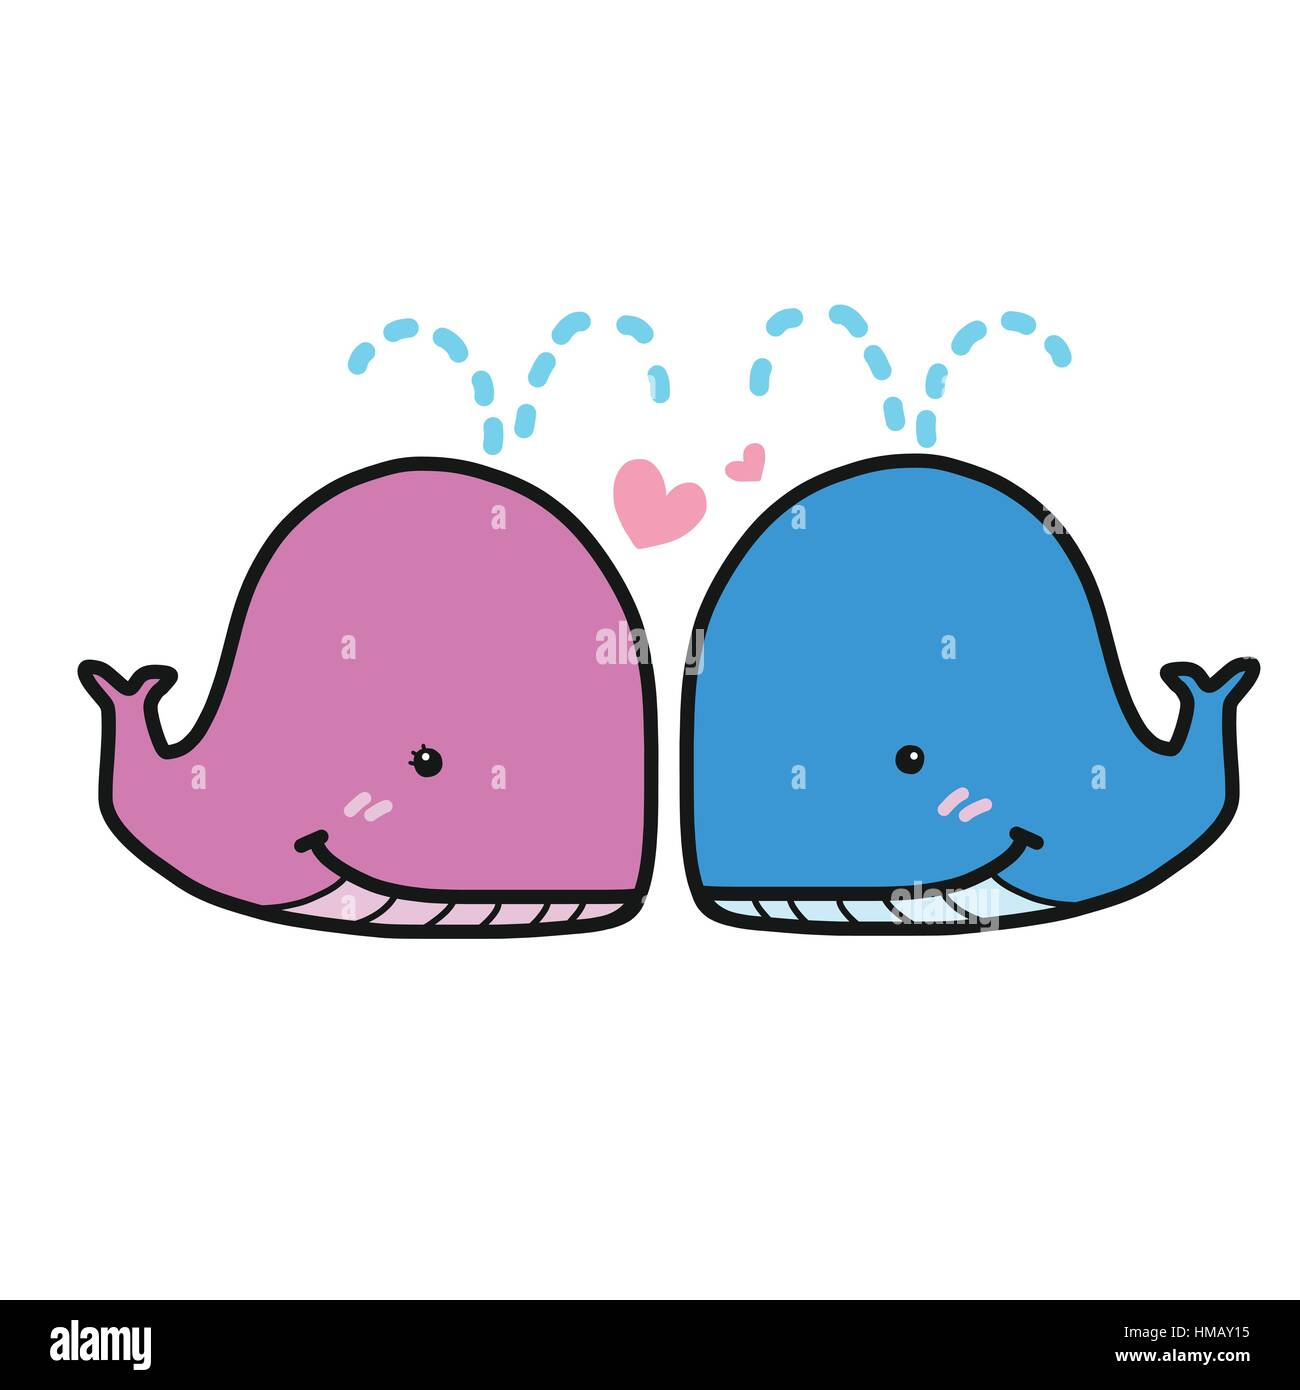 Cute whale in water cartoon isolated illustration stock photography - Cute Pink And Blue Couple Whales In Love Cartoon Vector Illustration